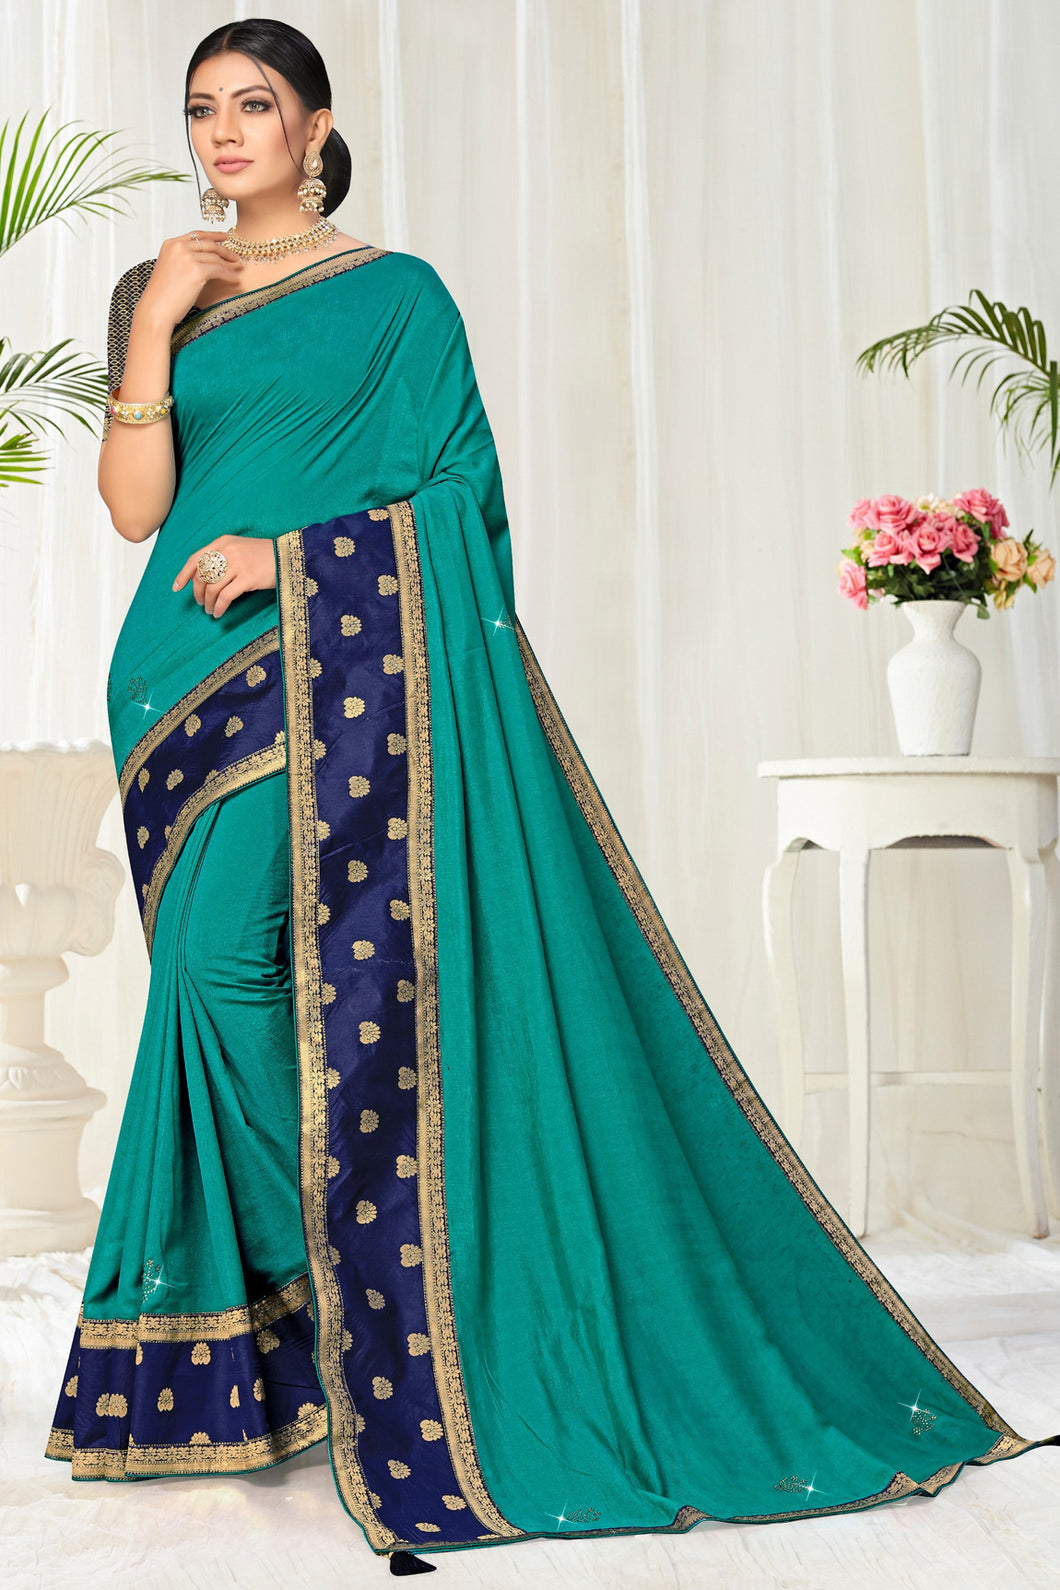 Bhelpuri Turquoise Green Vichitra silk Lace with stone Work Traditional Saree with Blouse Piece